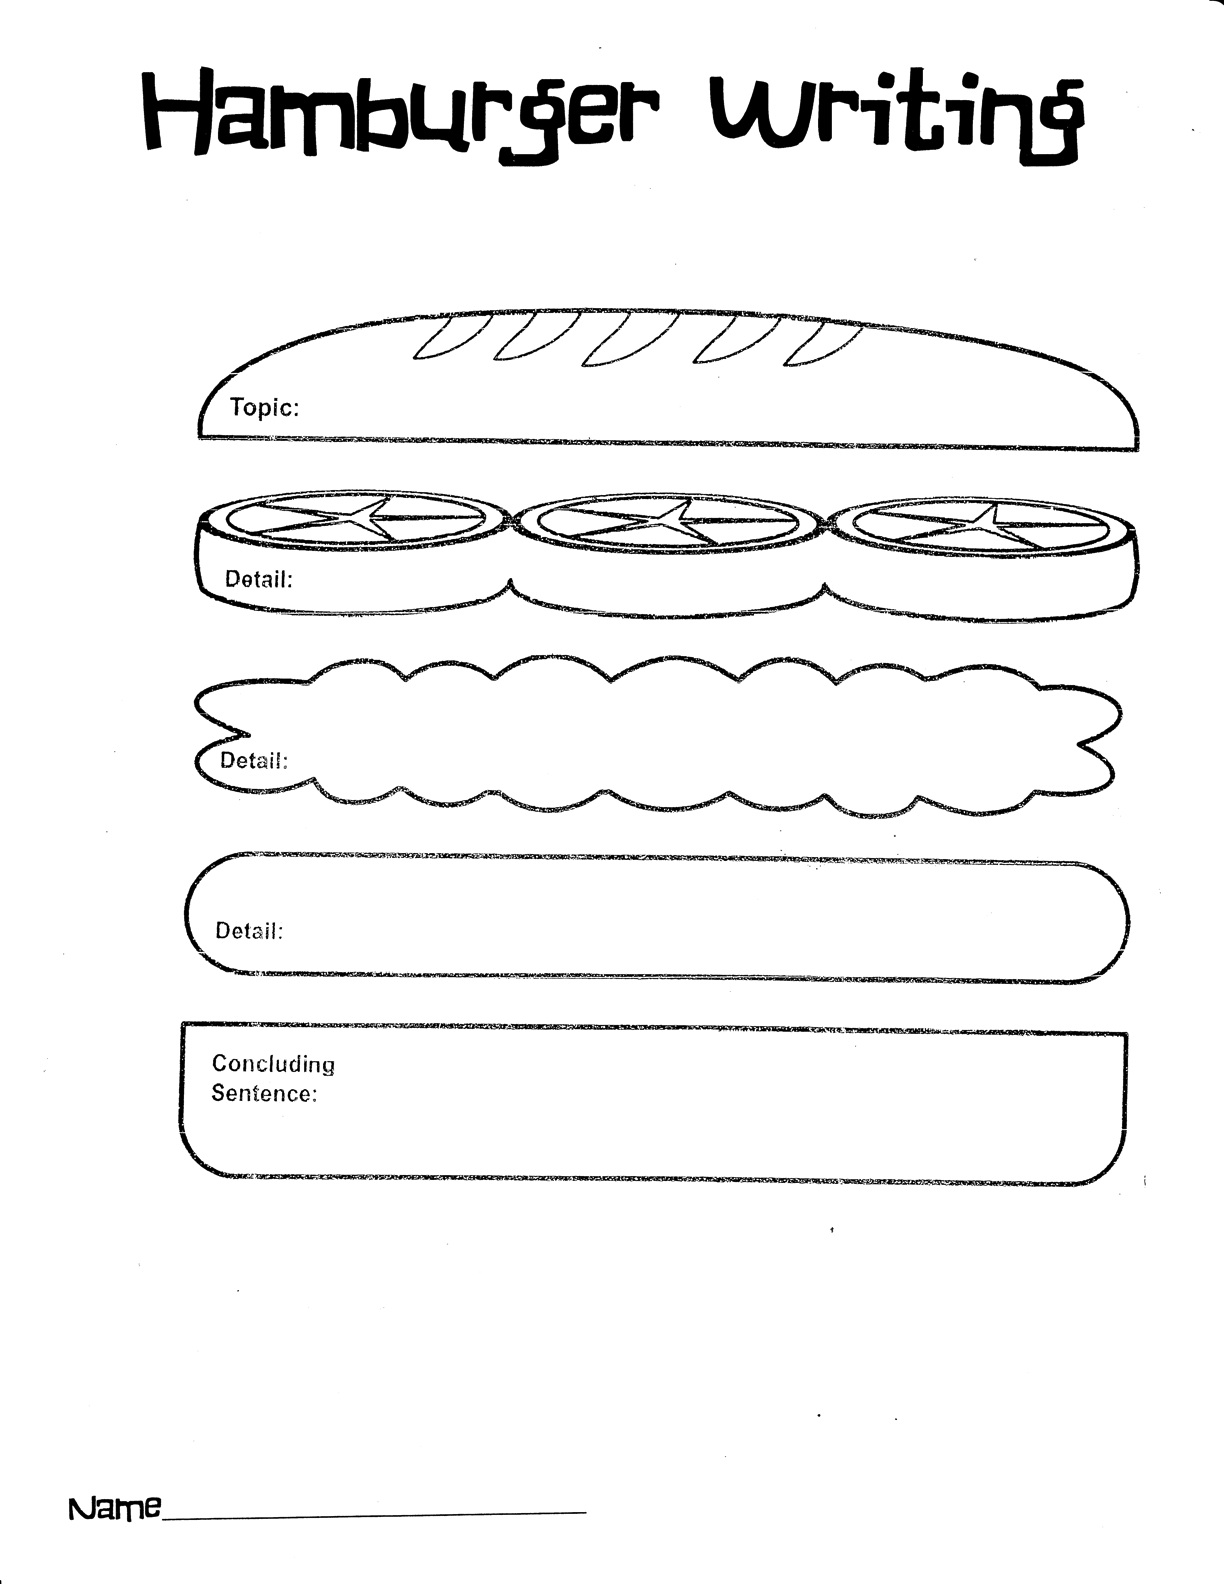 What the Teacher Wants!: Hamburger Writing